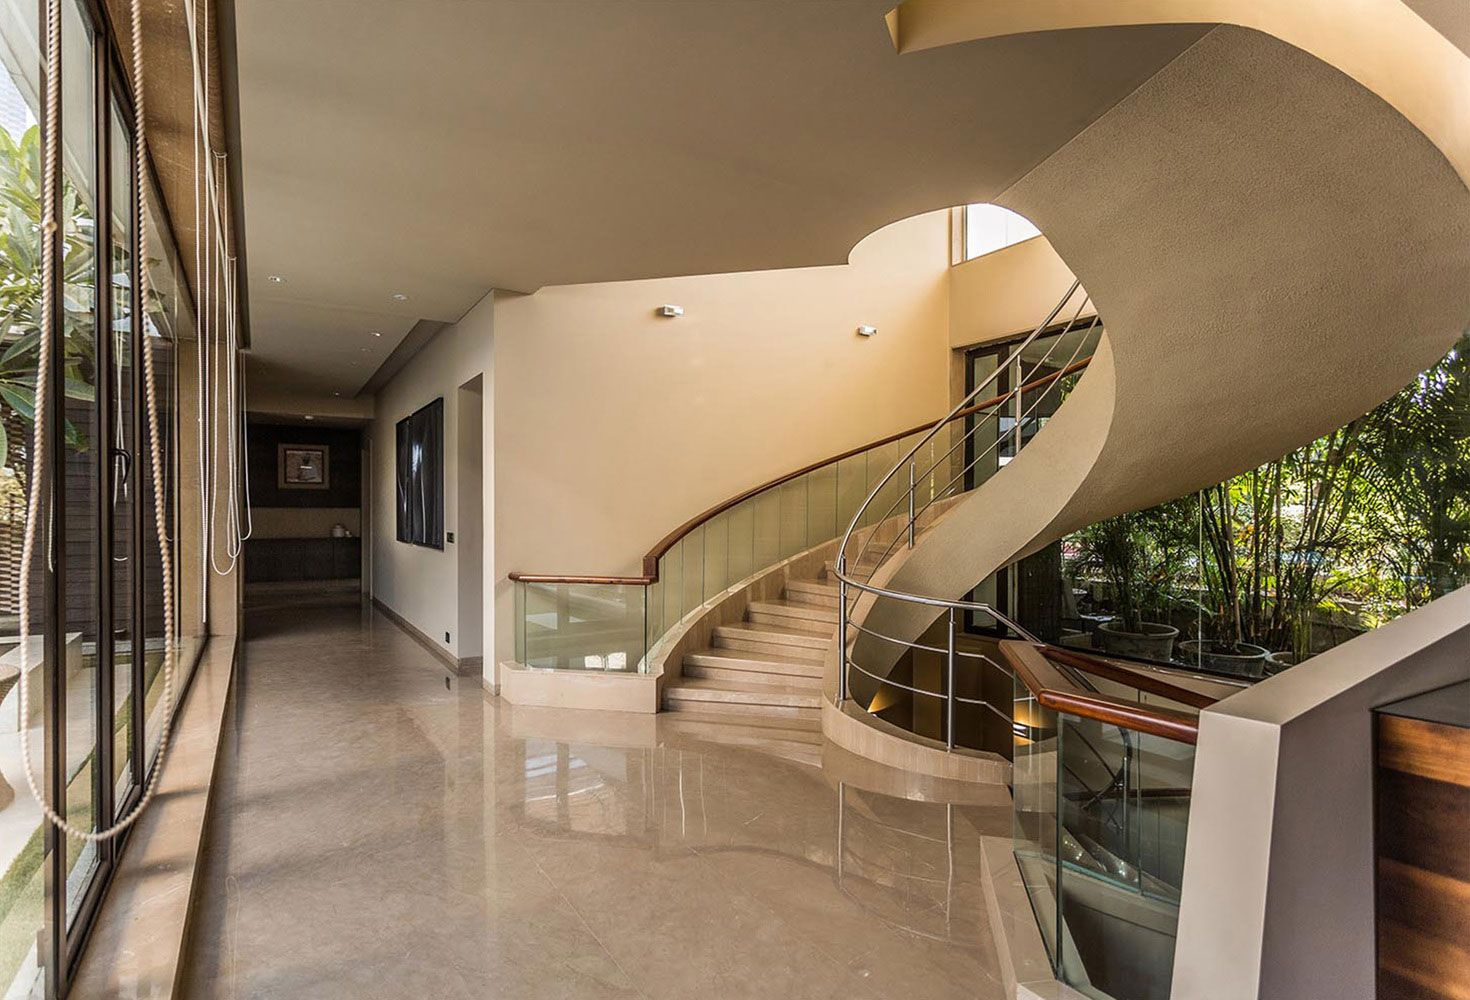 interior design of bungalow houses%0A Fantastic Bungalow Designed by KNS Architects in India